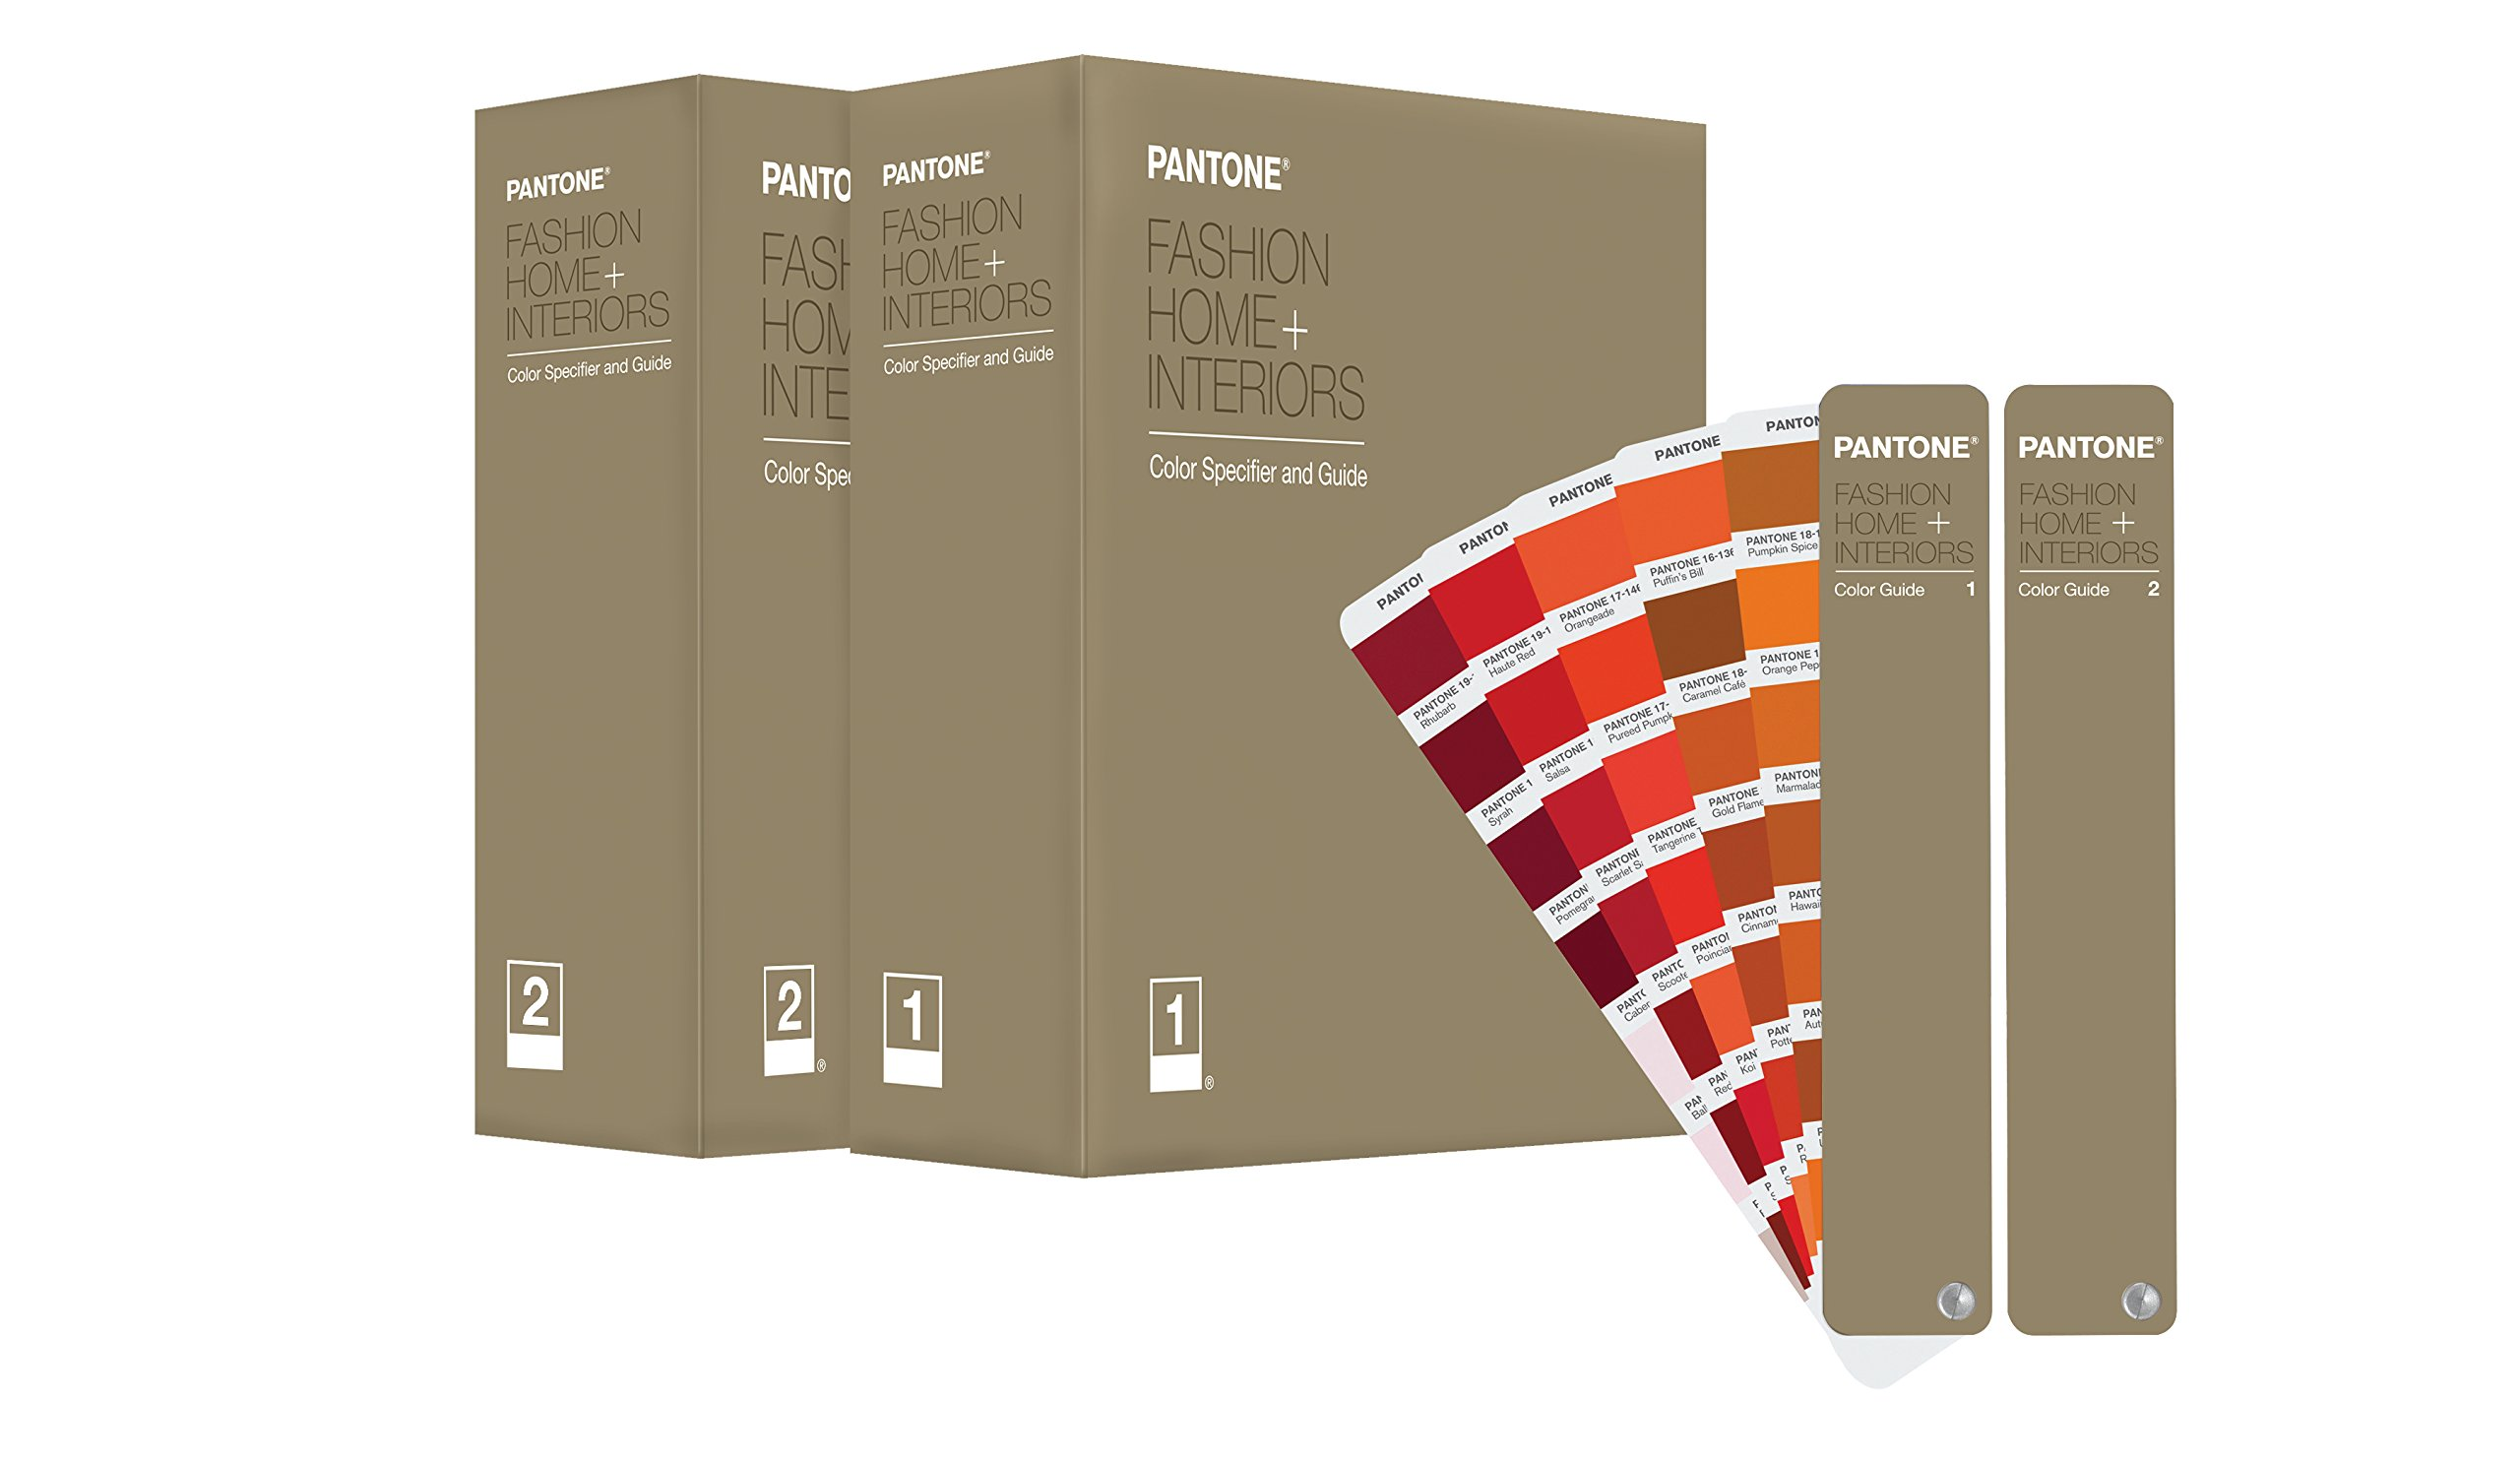 Buy Pantone Fashion + Home, Interiors Color Specifier U0026 Guide Set Book  Online At Low Prices In India | Pantone Fashion + Home, Interiors Color  Specifier ...